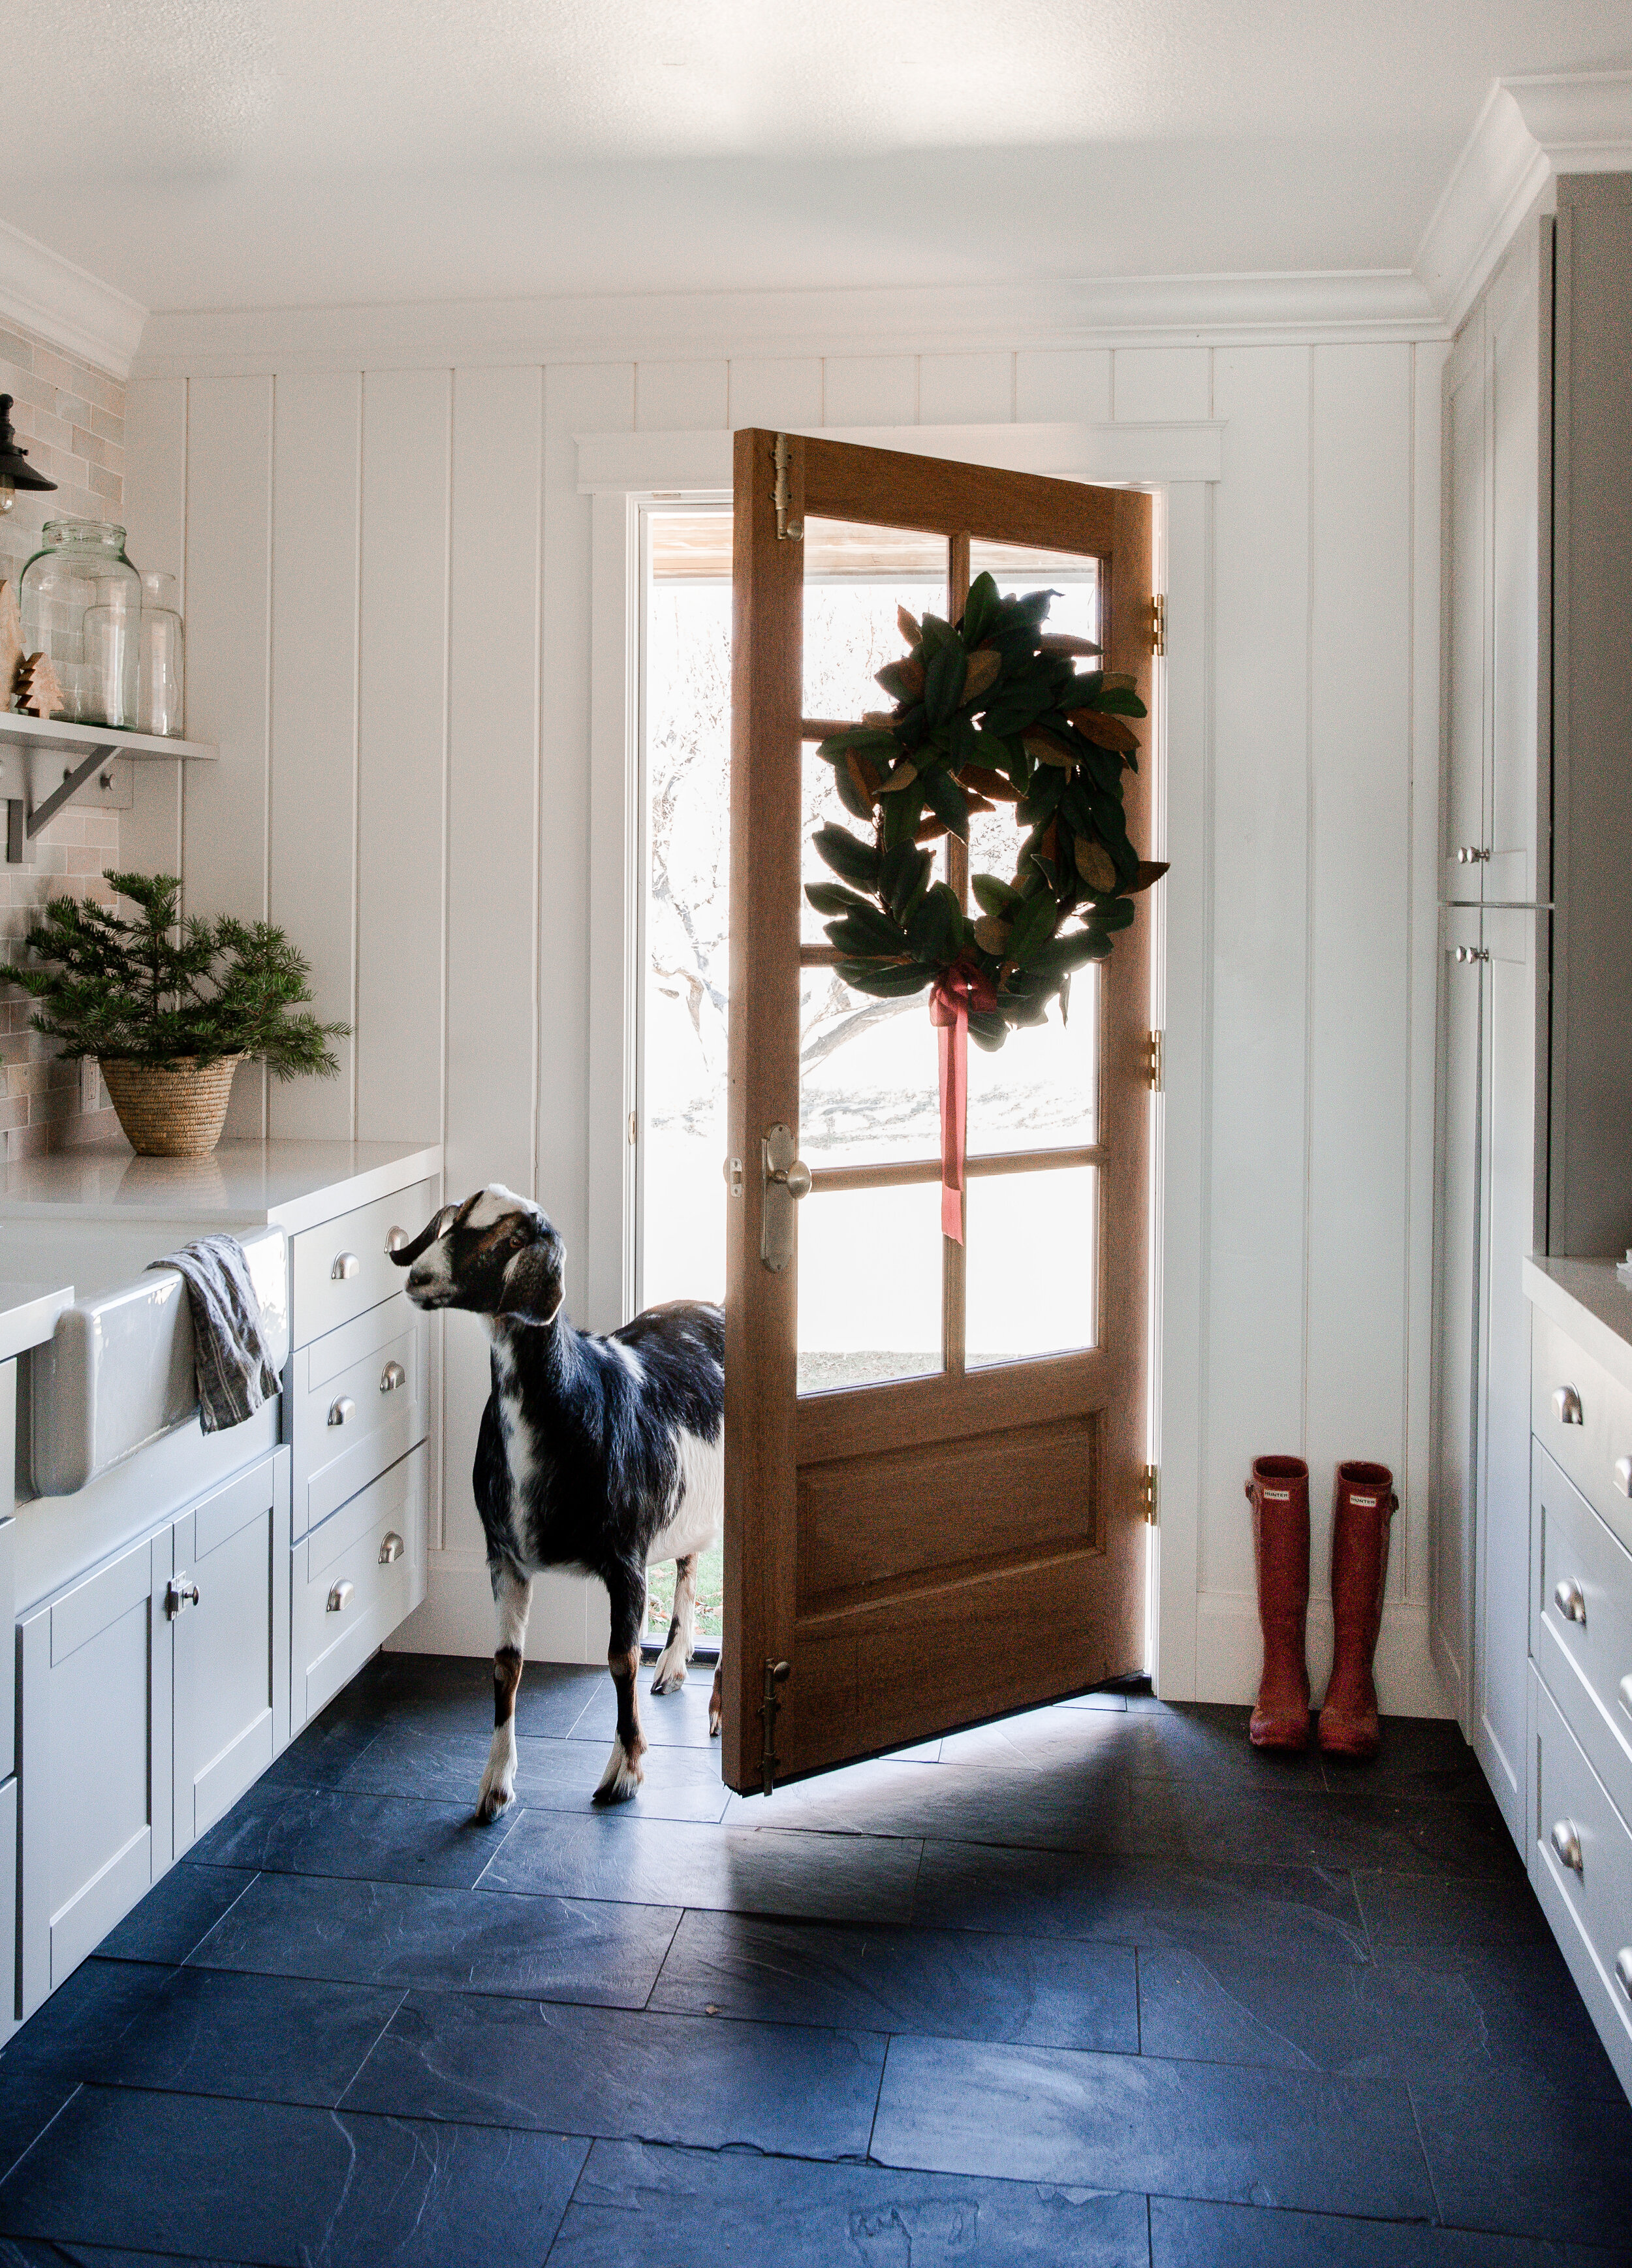 Come on in to our farmhouse all dressed up for Christmas! I hope you find some inspiration while you're here!